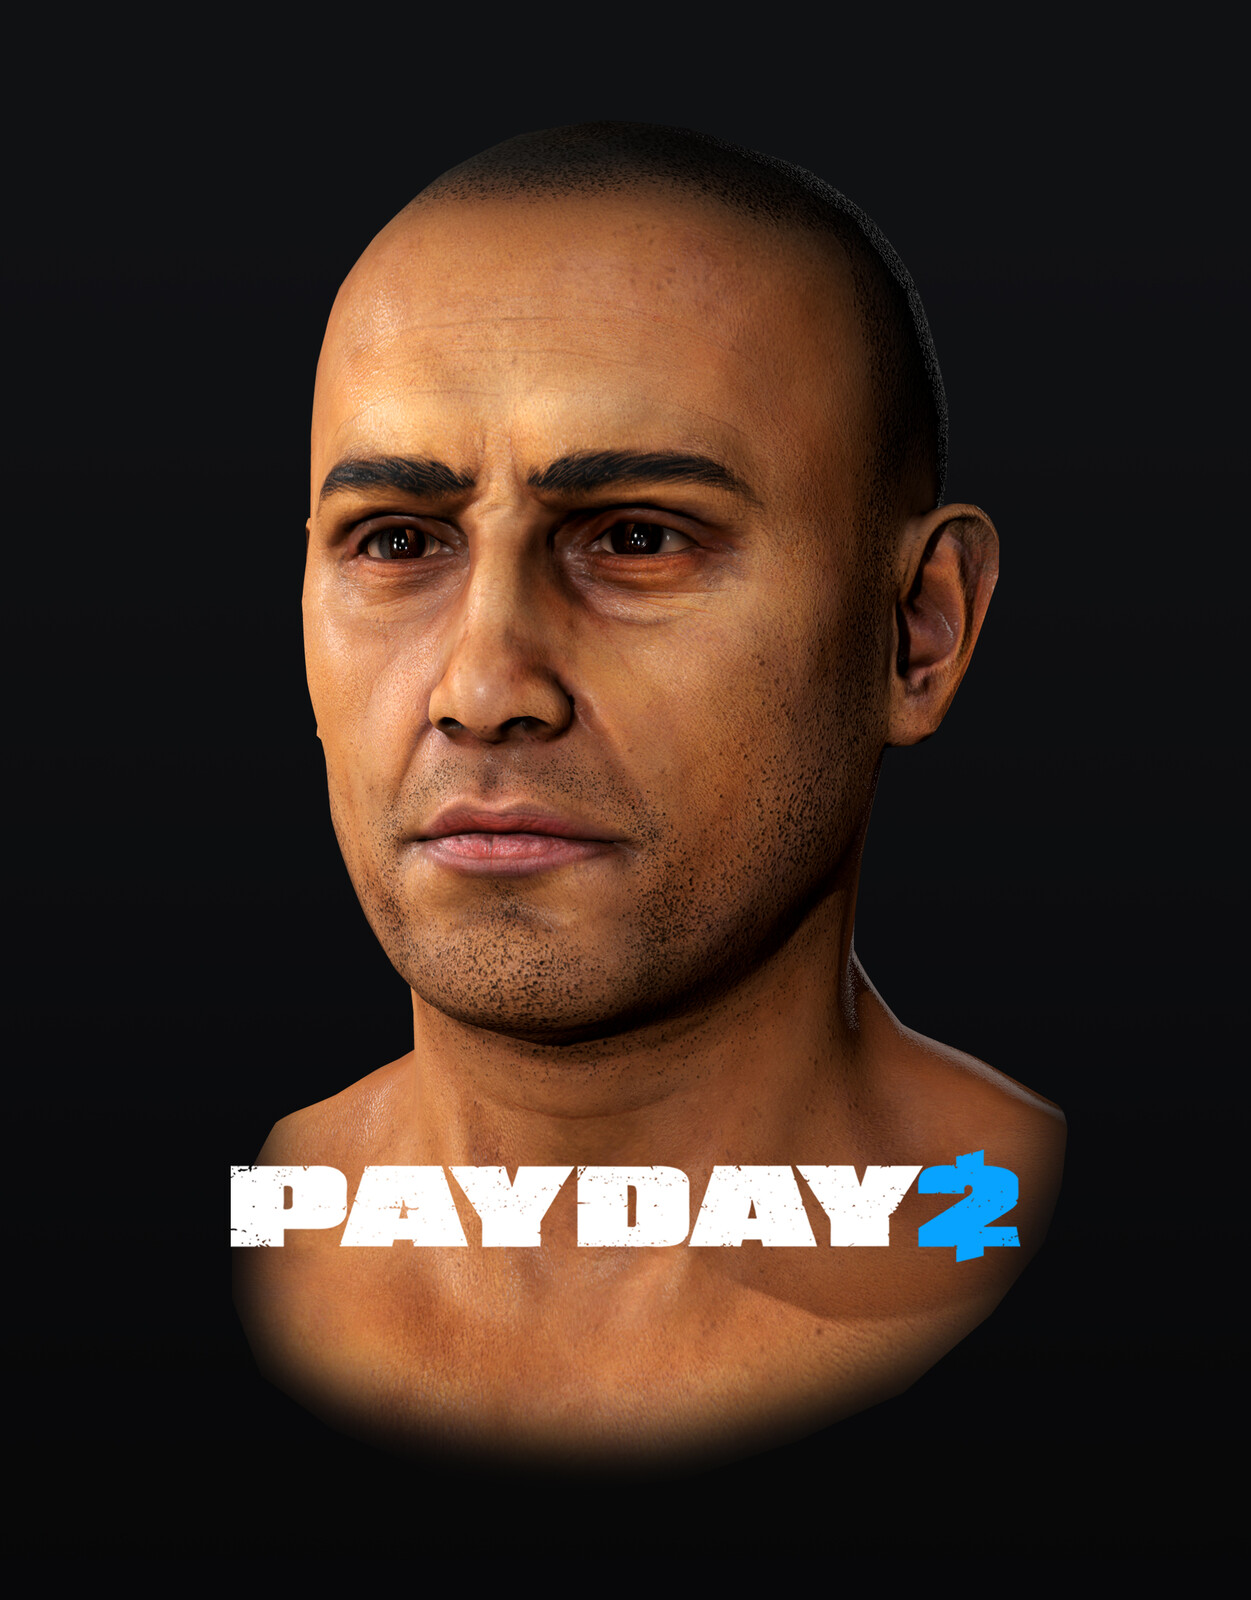 Payday 2: San Martin Bank's Security Head